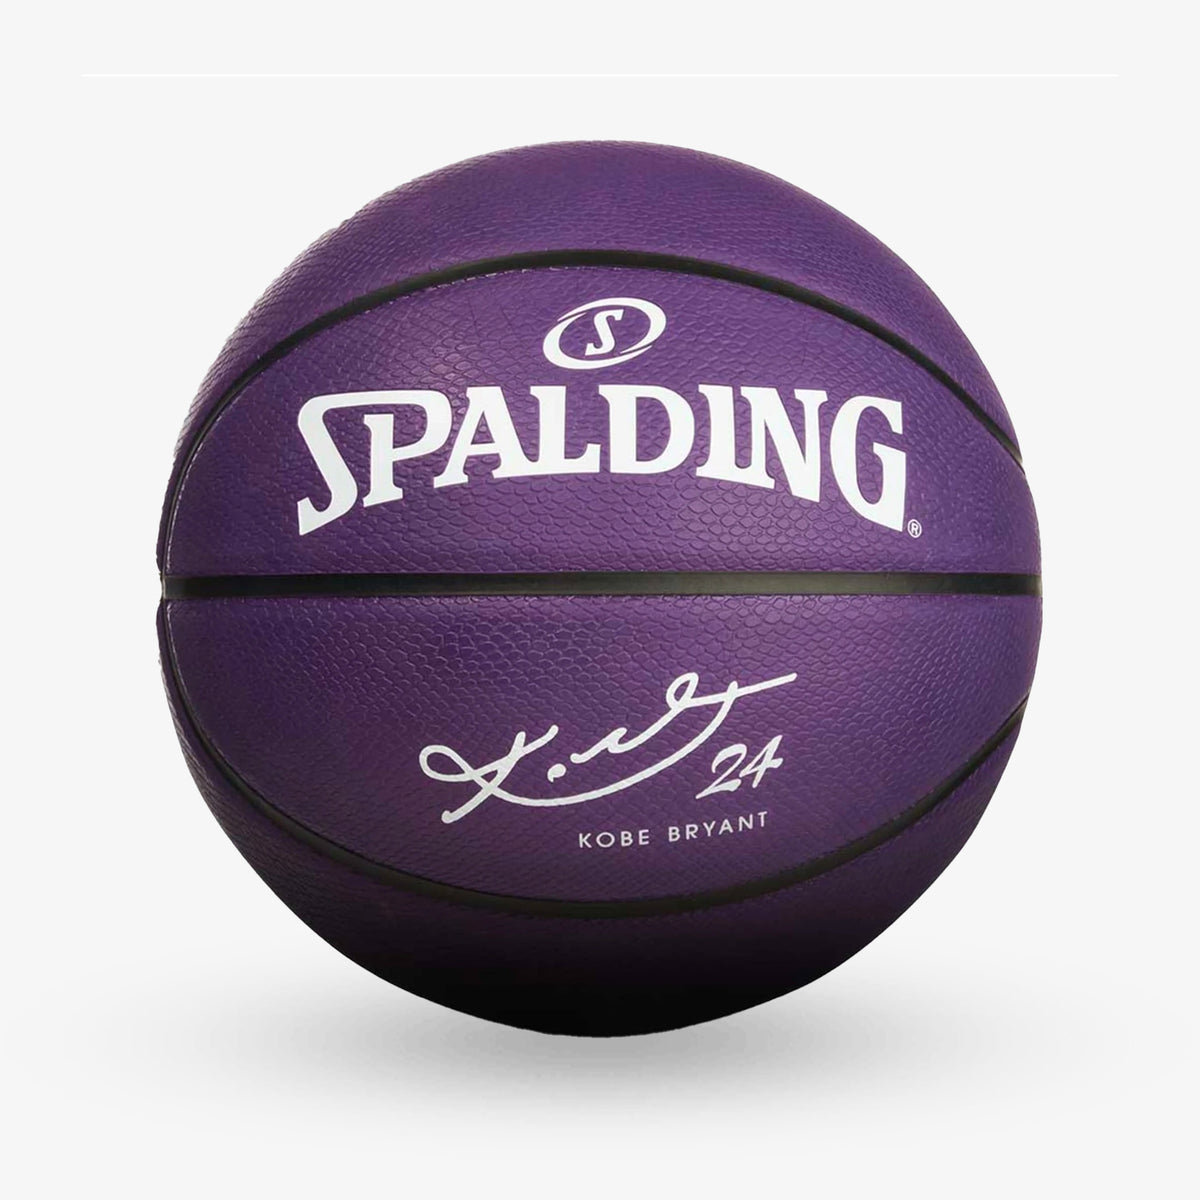 Spalding Kobe Bryant Outdoor Basketball - Purple Snake - Size 7